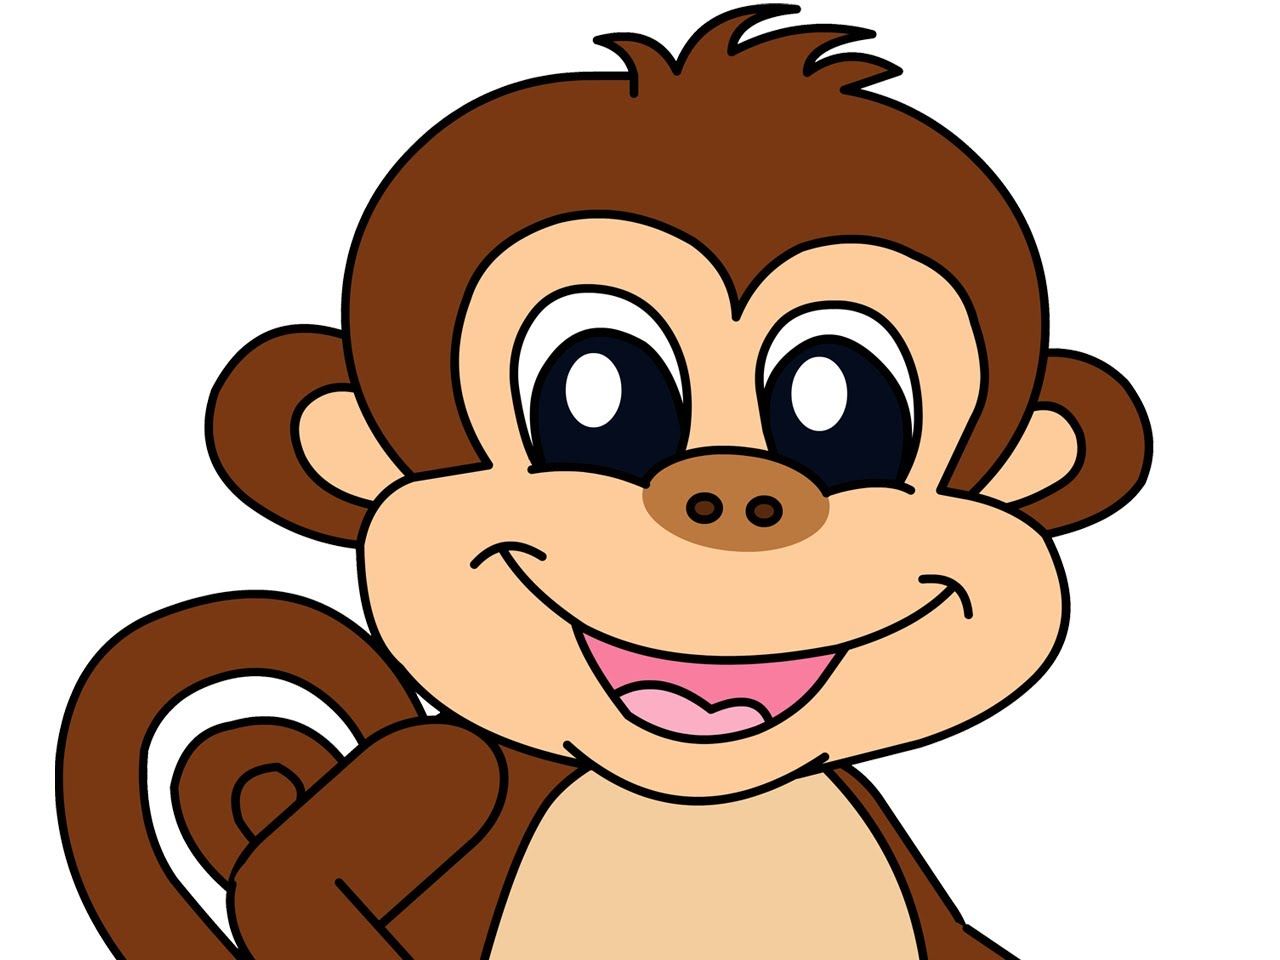 japanese wallpaper cartoon monkey - photo #17